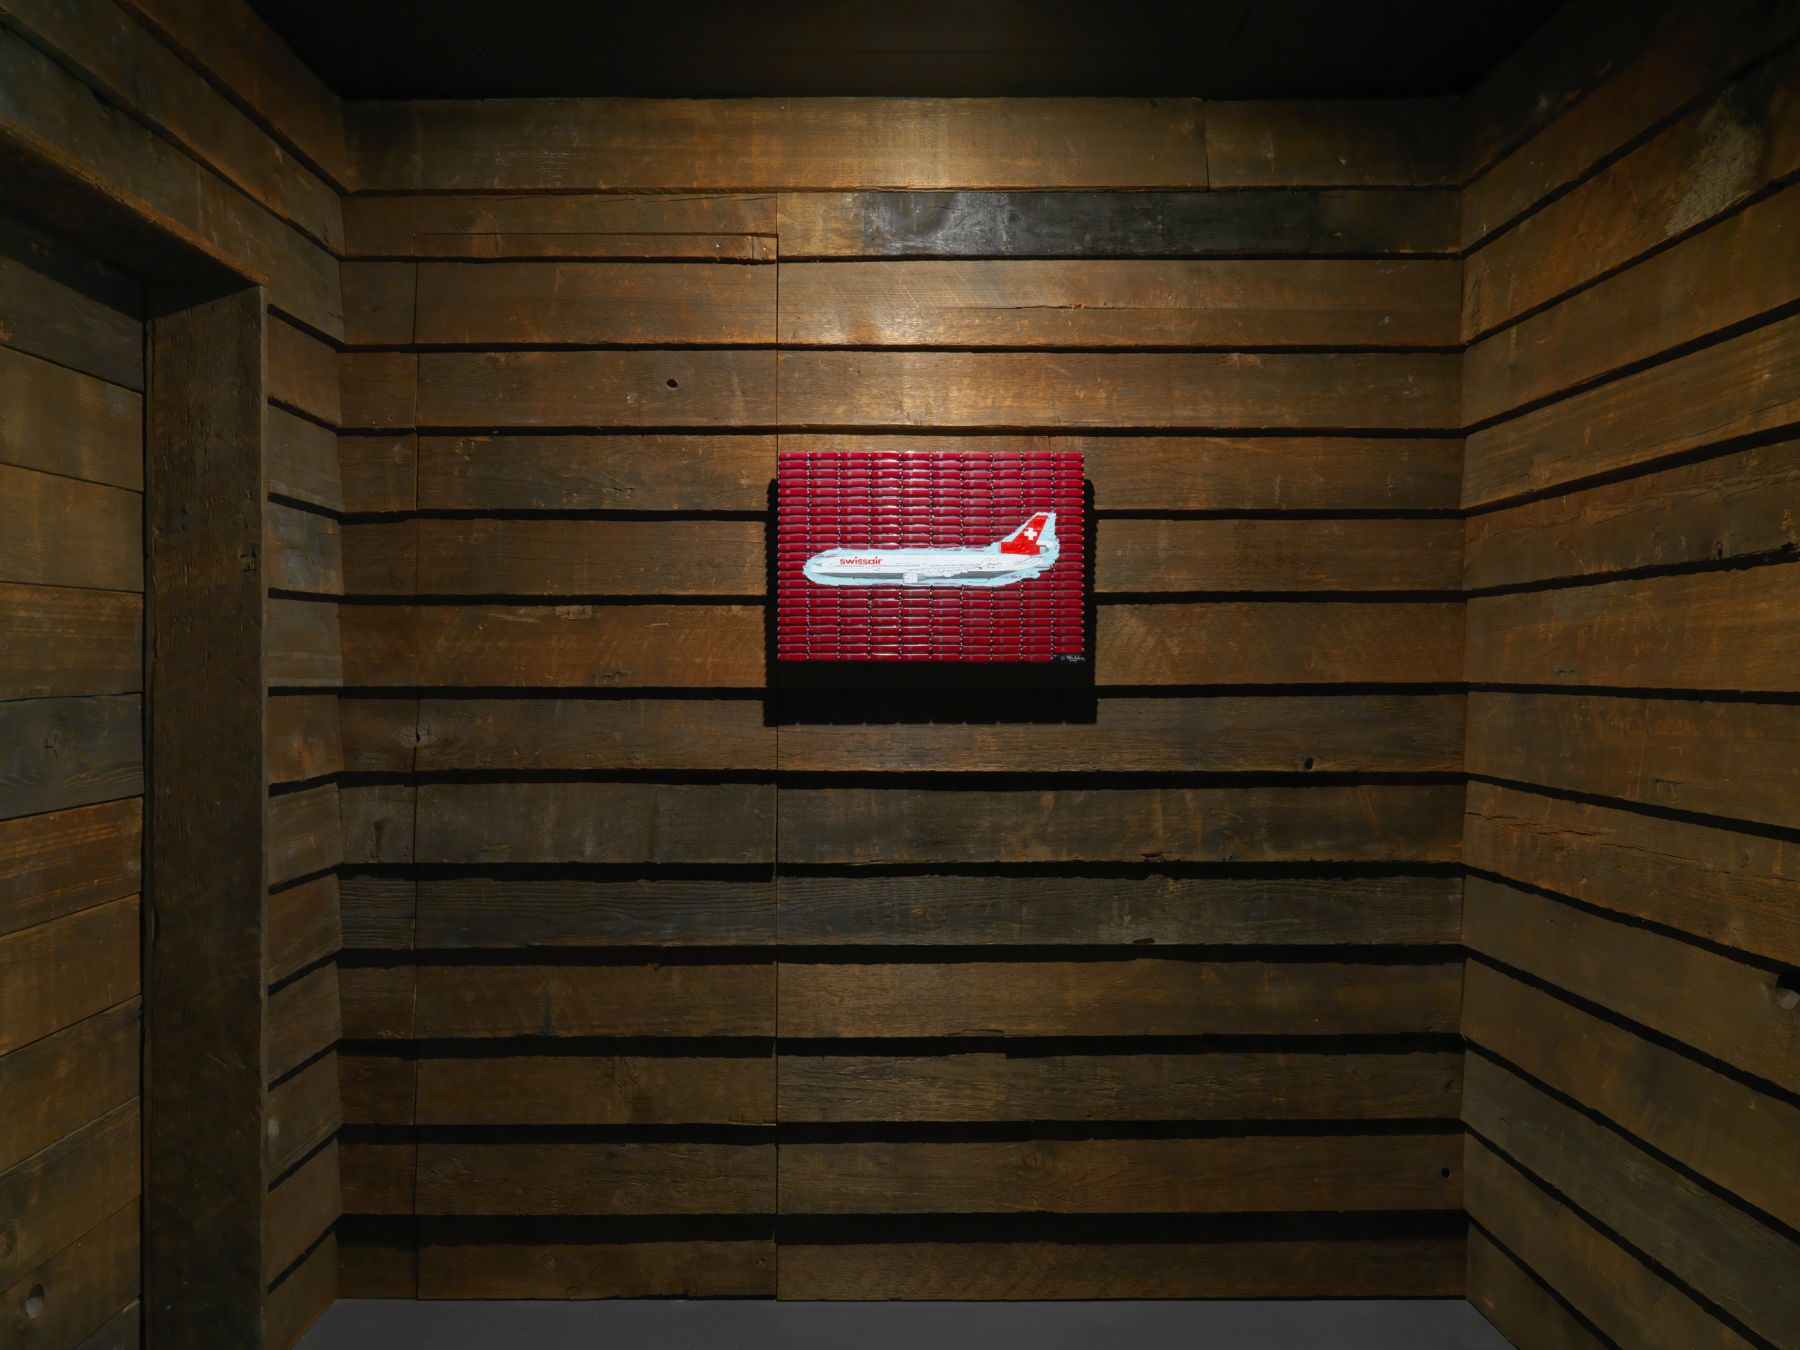 Installation view: Tom Sachs,The Pack,Vito Schnabel Gallery, St. Moritz, 2018-2019, © Tom Sachs; Photos by Stefan Altenburger; Courtesy Tom Sachs Studio and Vito Schnabel Gallery